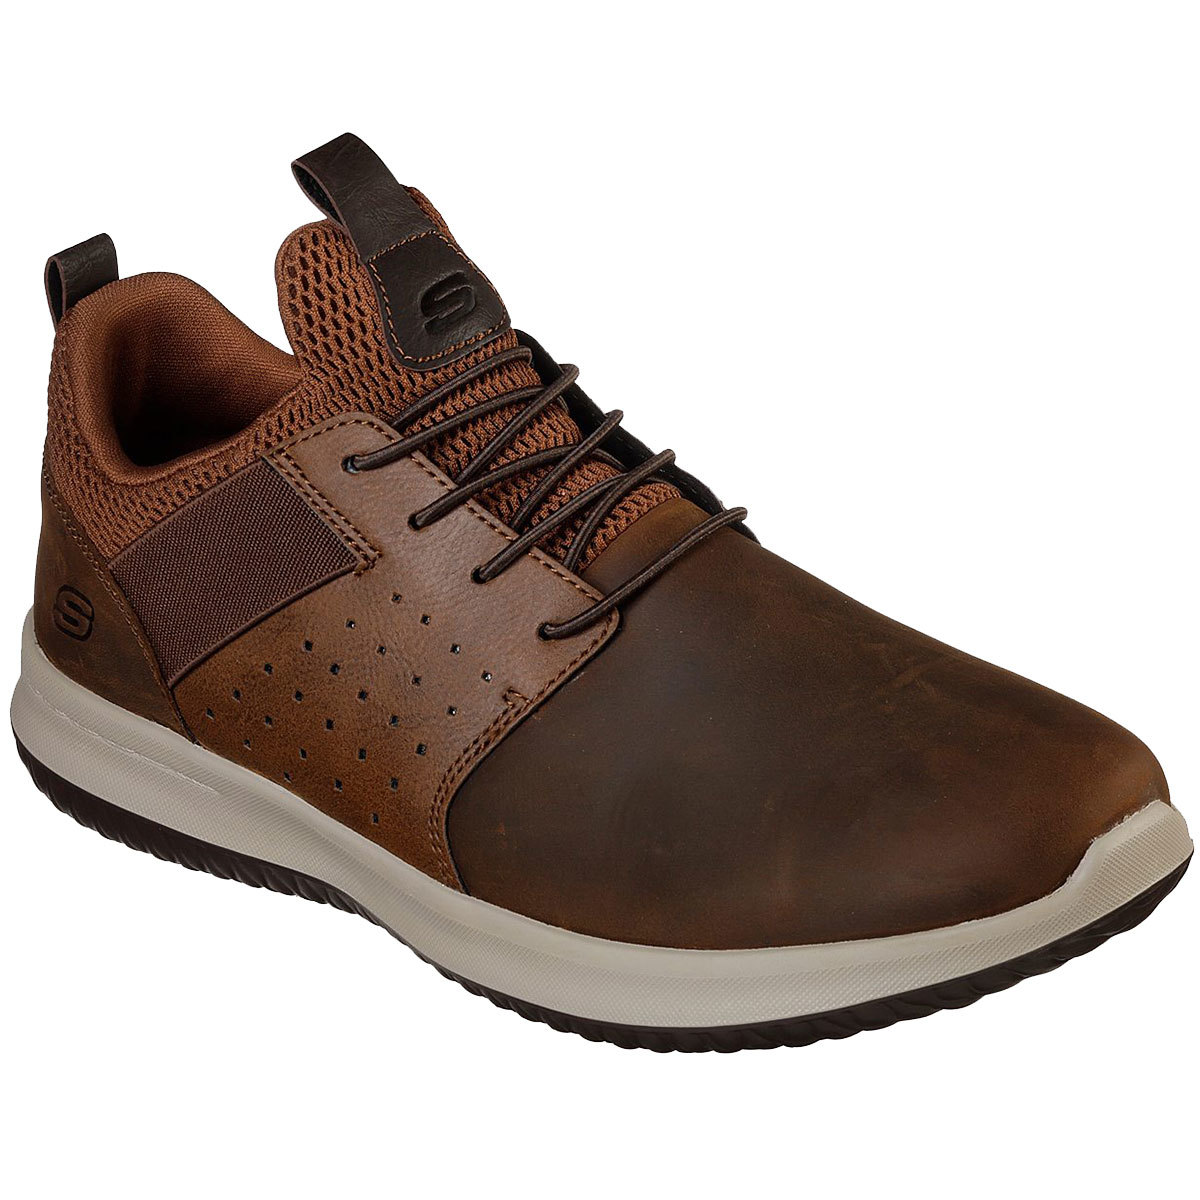 """Skechers Men's Delson A """" Axton Sneakers - Brown, 12"""